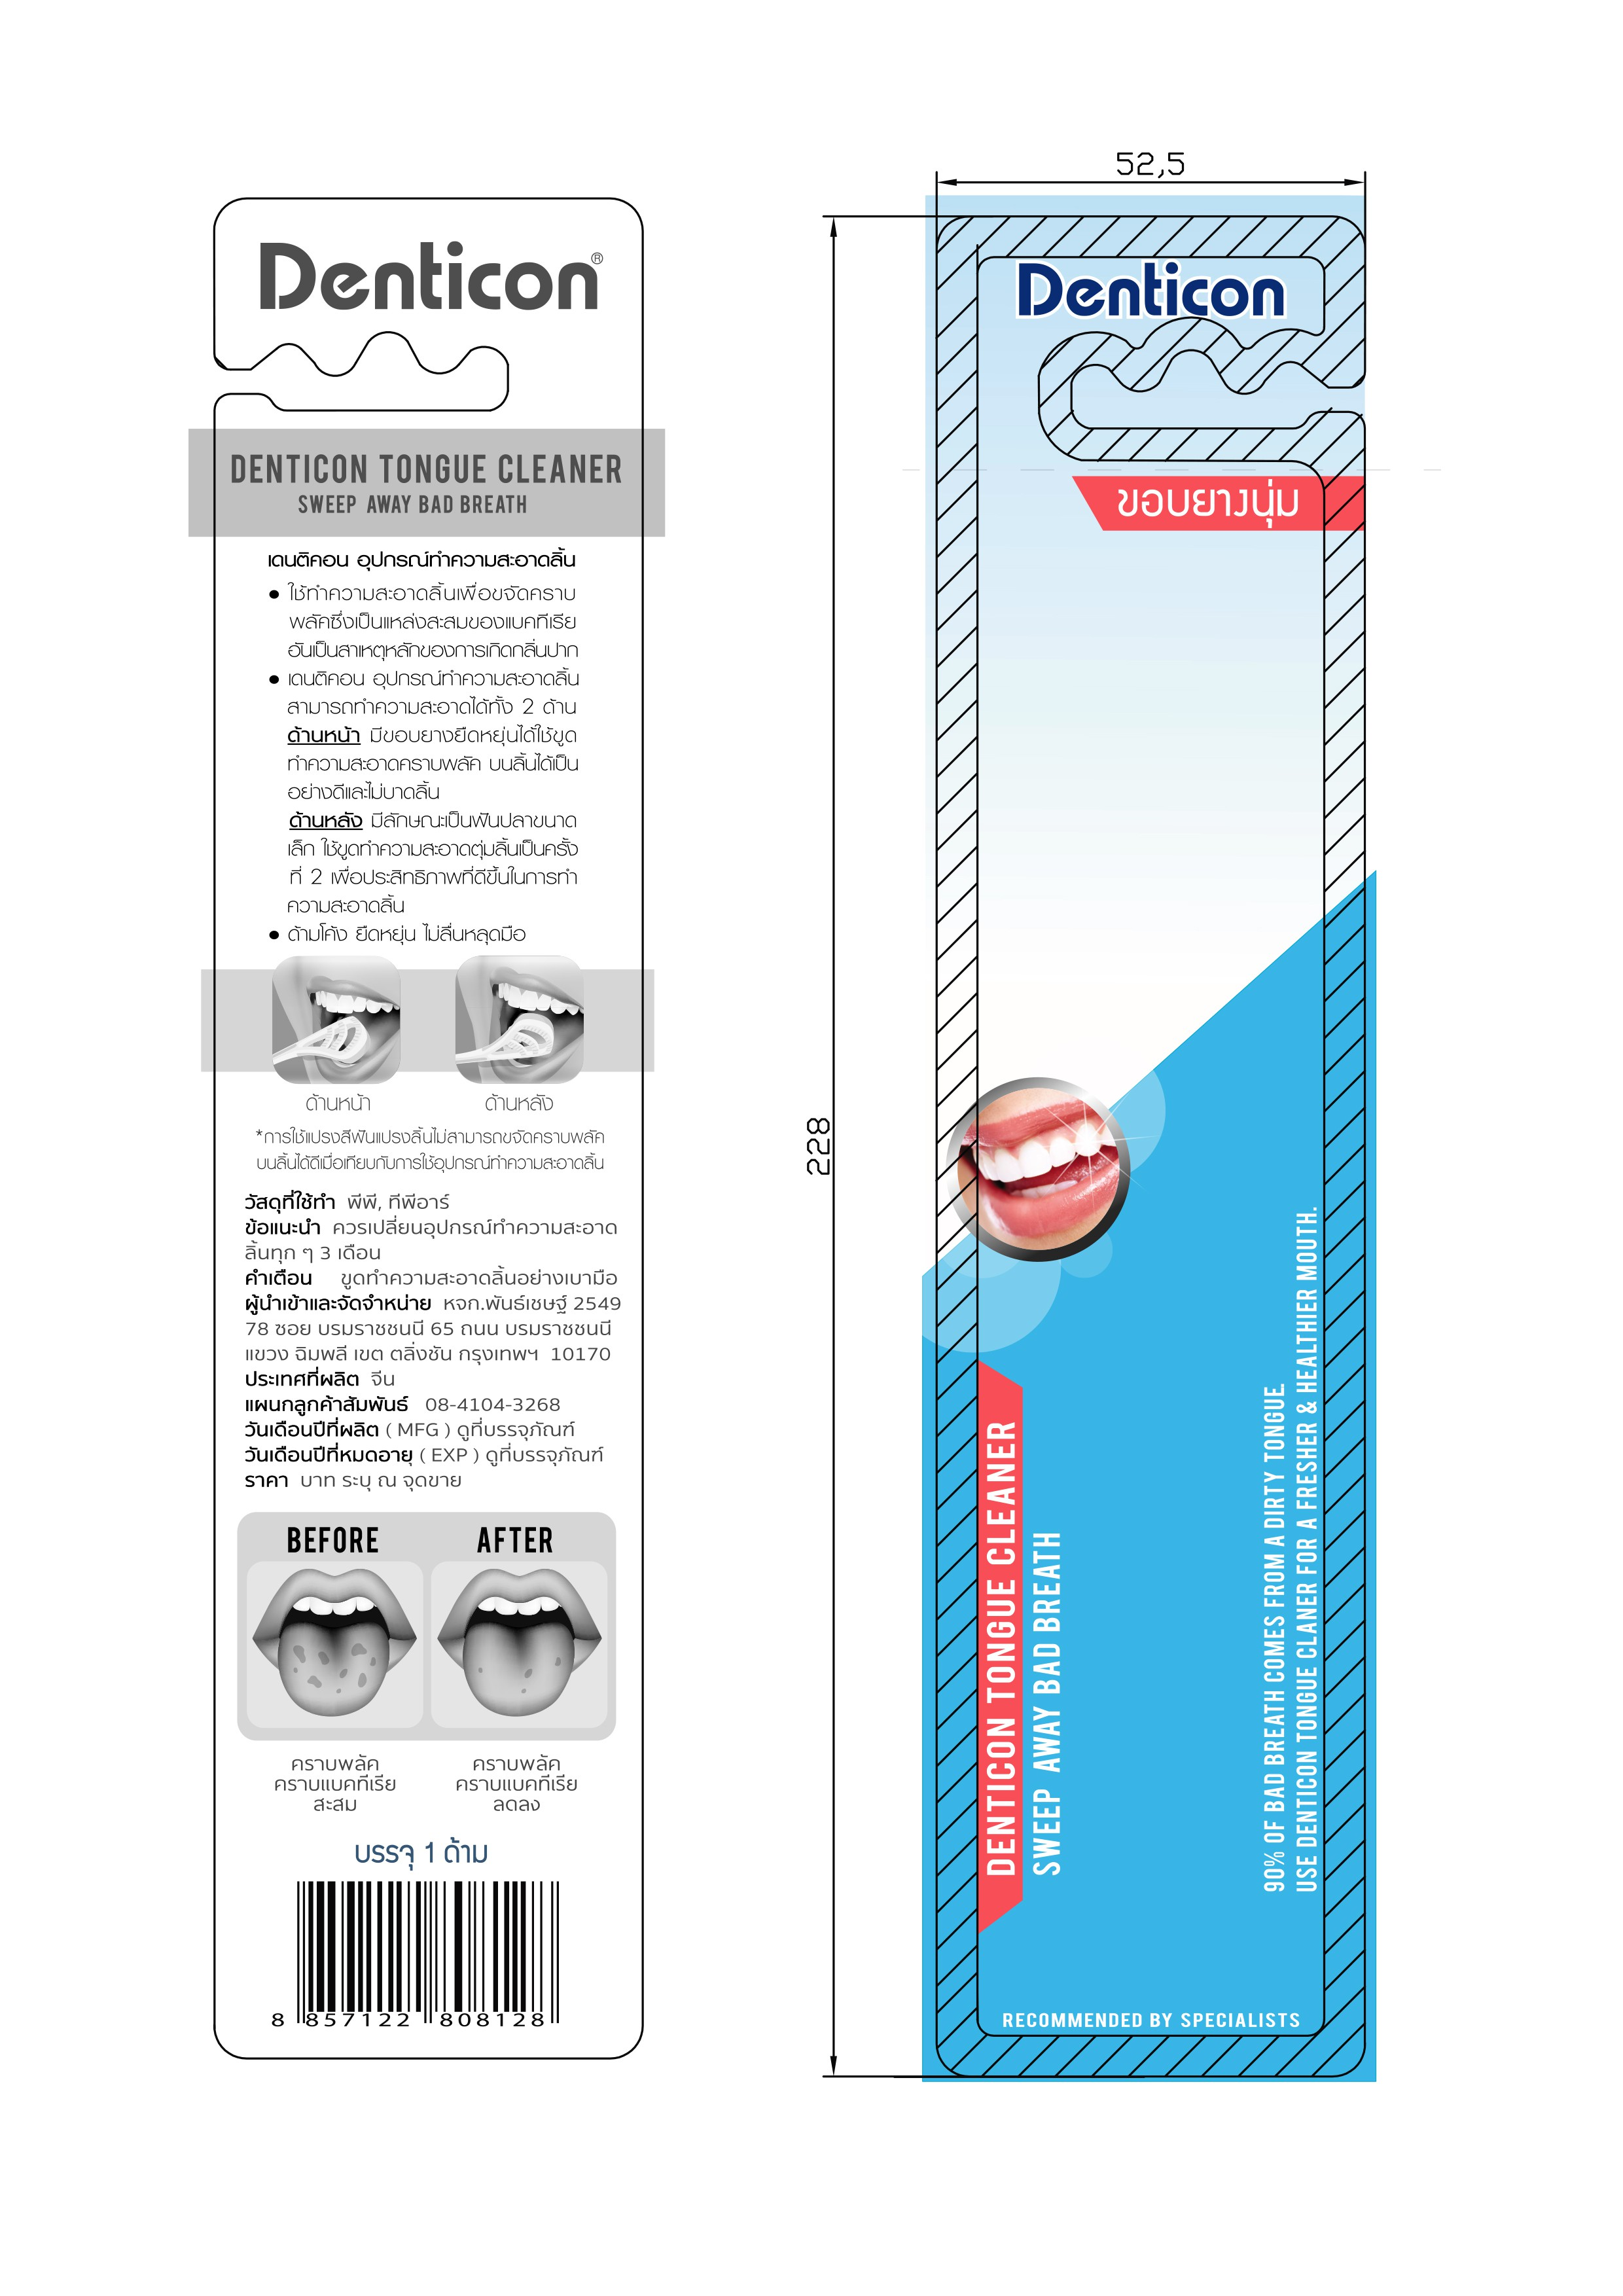 Refresh The design of Denticon Tongue Cleaner